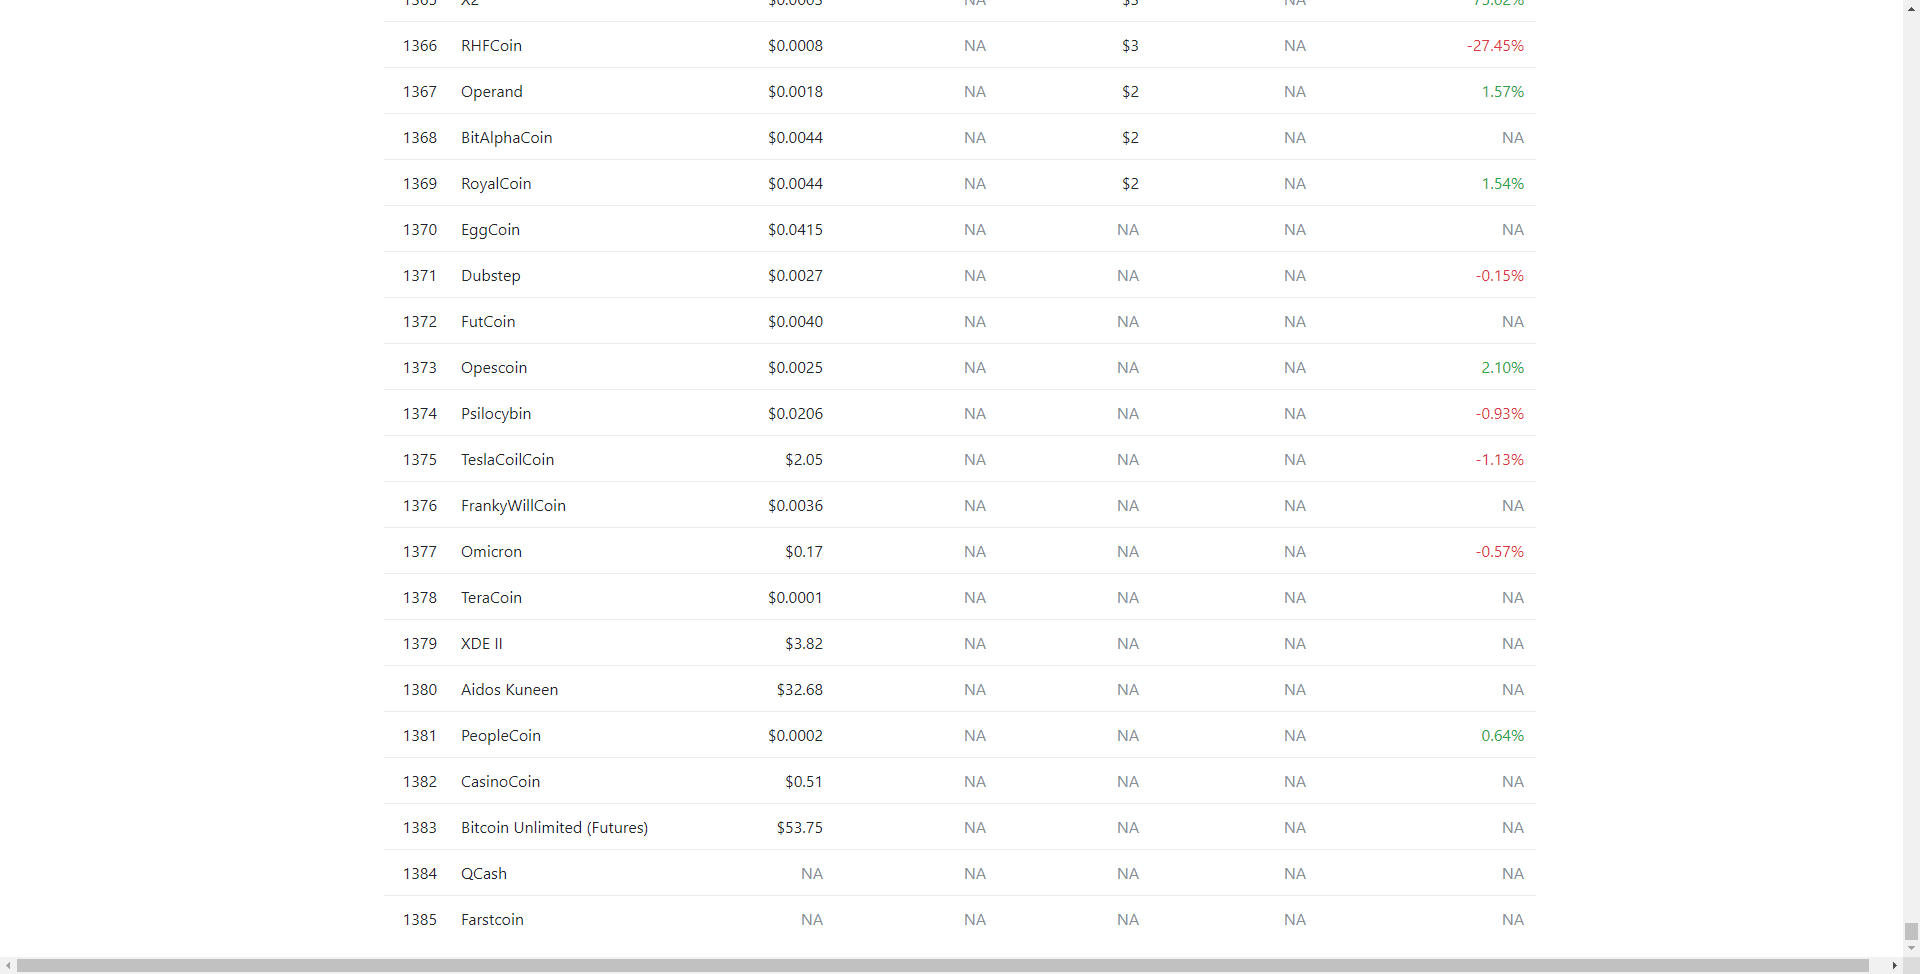 Table With Missing Values